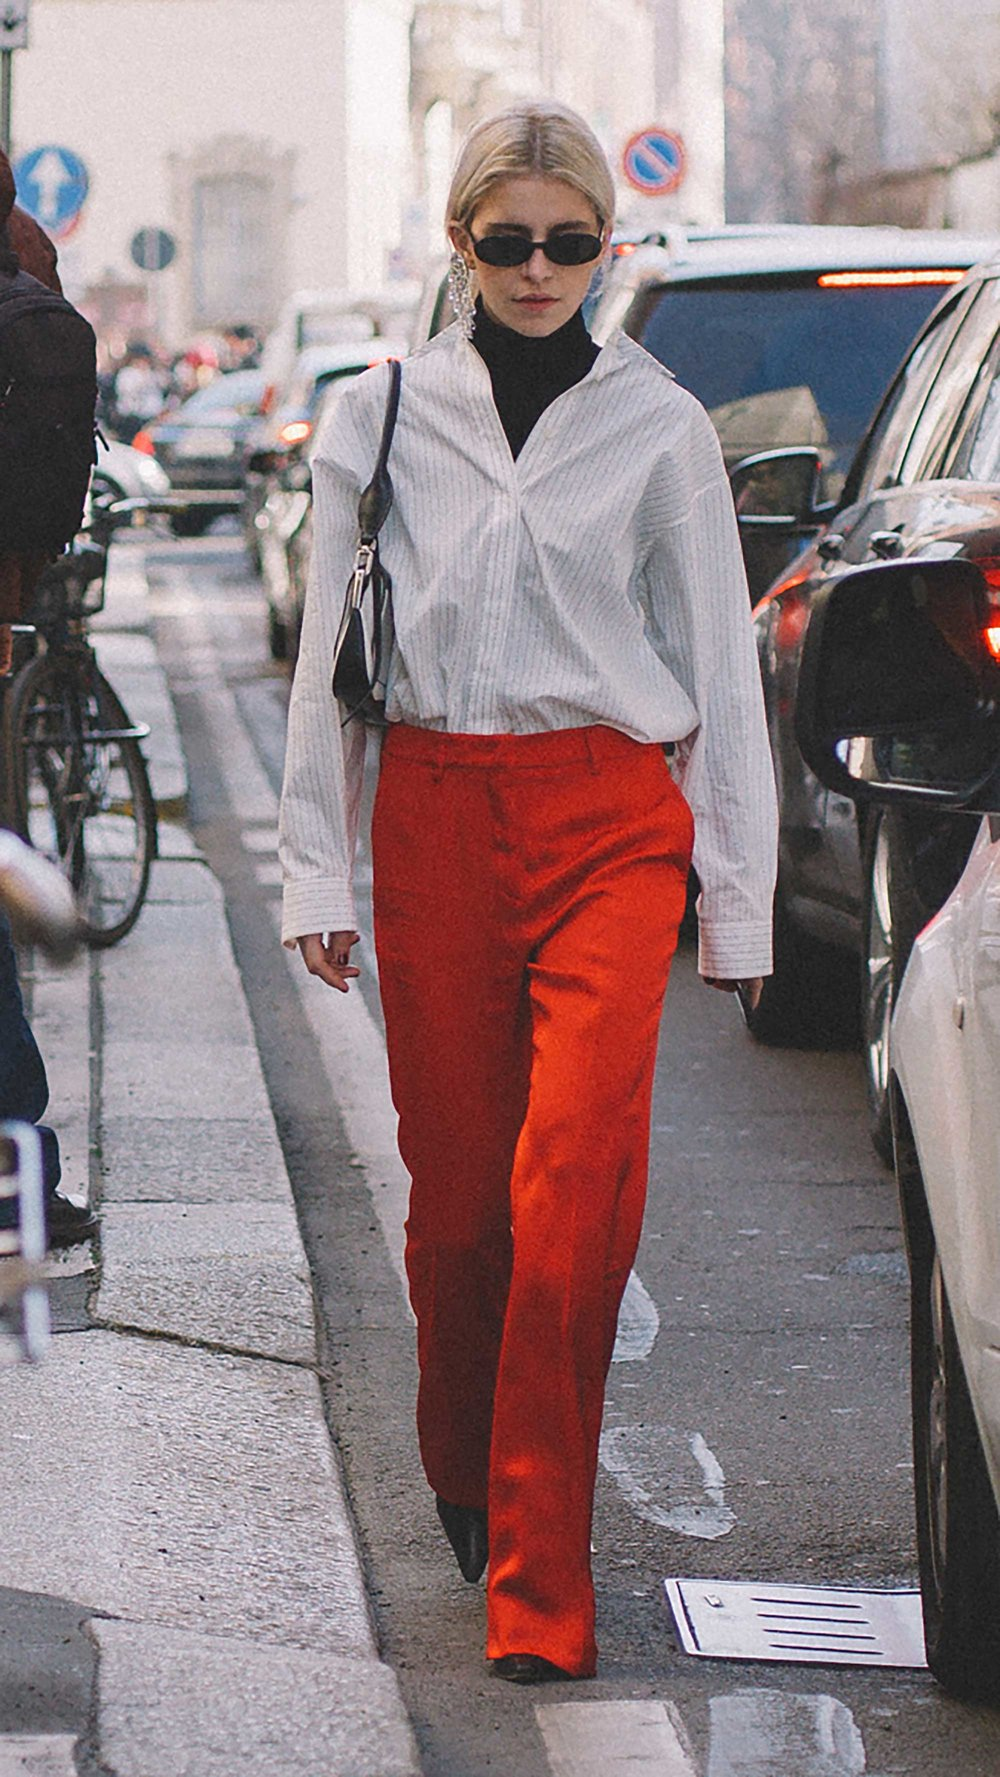 est outfits of Milan Fashion Week street style day two MFW FW19 91.jpg